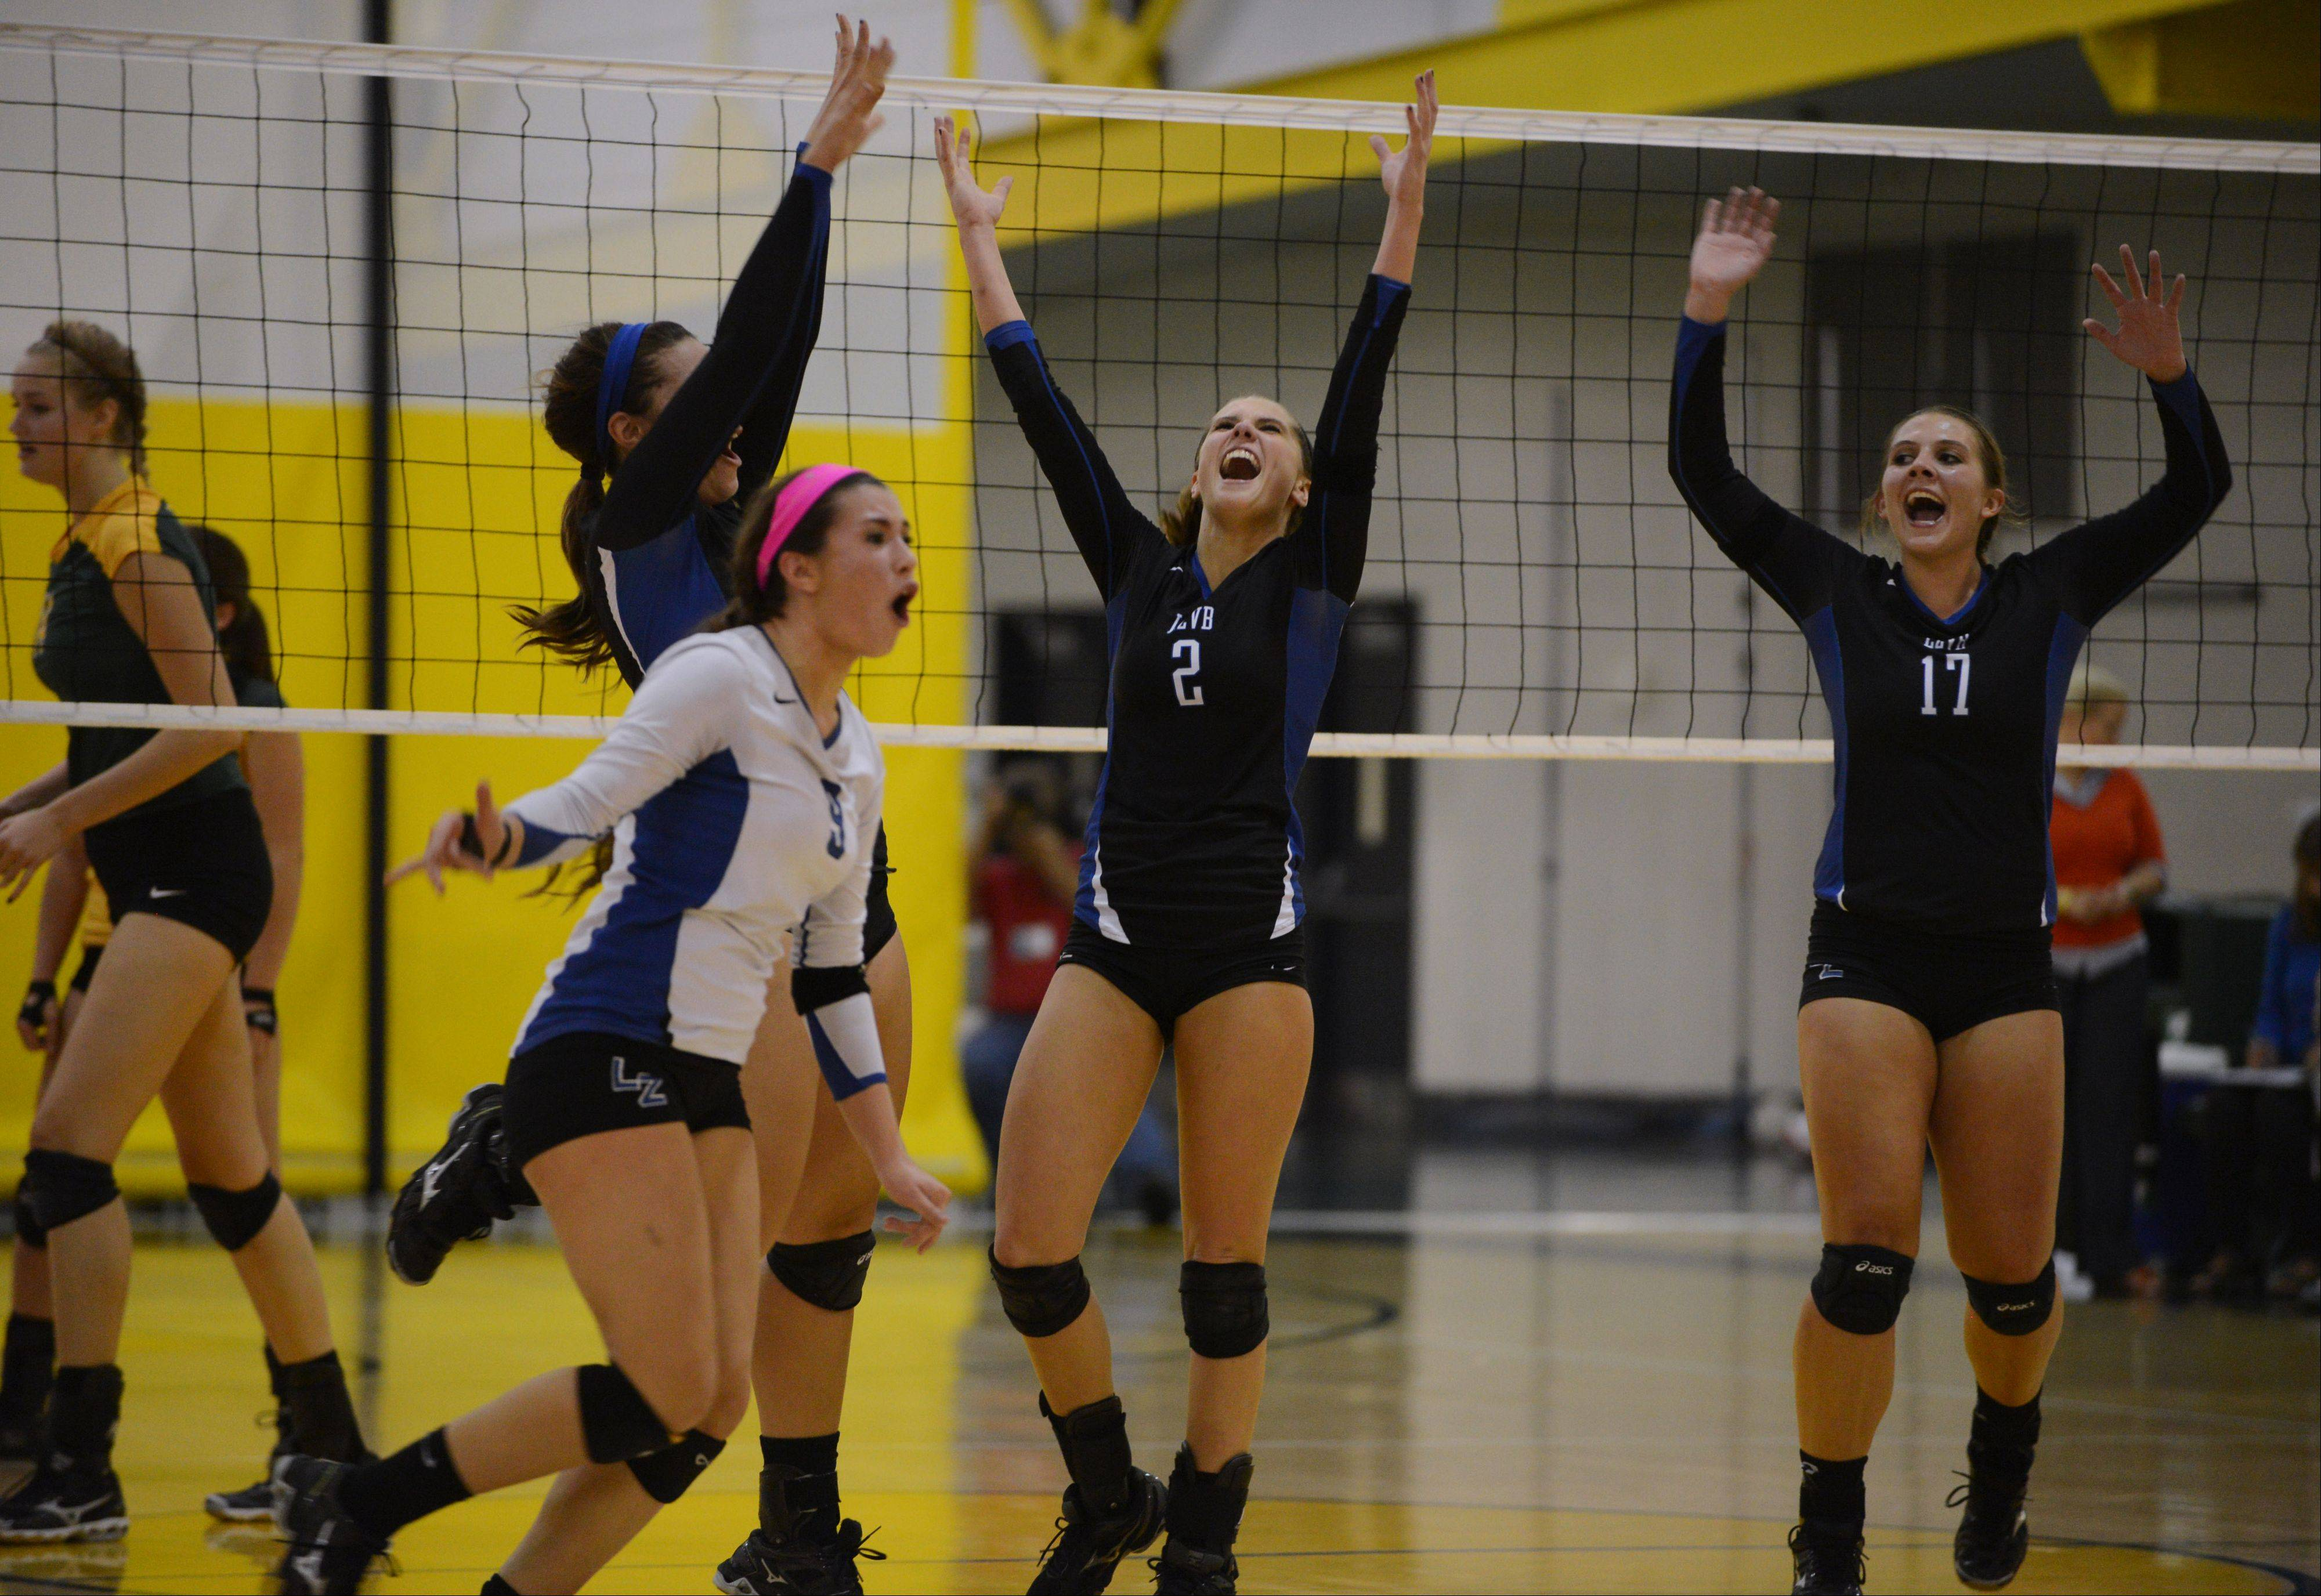 Lake Zurich players Ashley Dina (9), Mickenzie Andrews (2) and Allie McIlwain (17) celebrate their set two win over Stevenson on Wednesday in Lincolnshire.